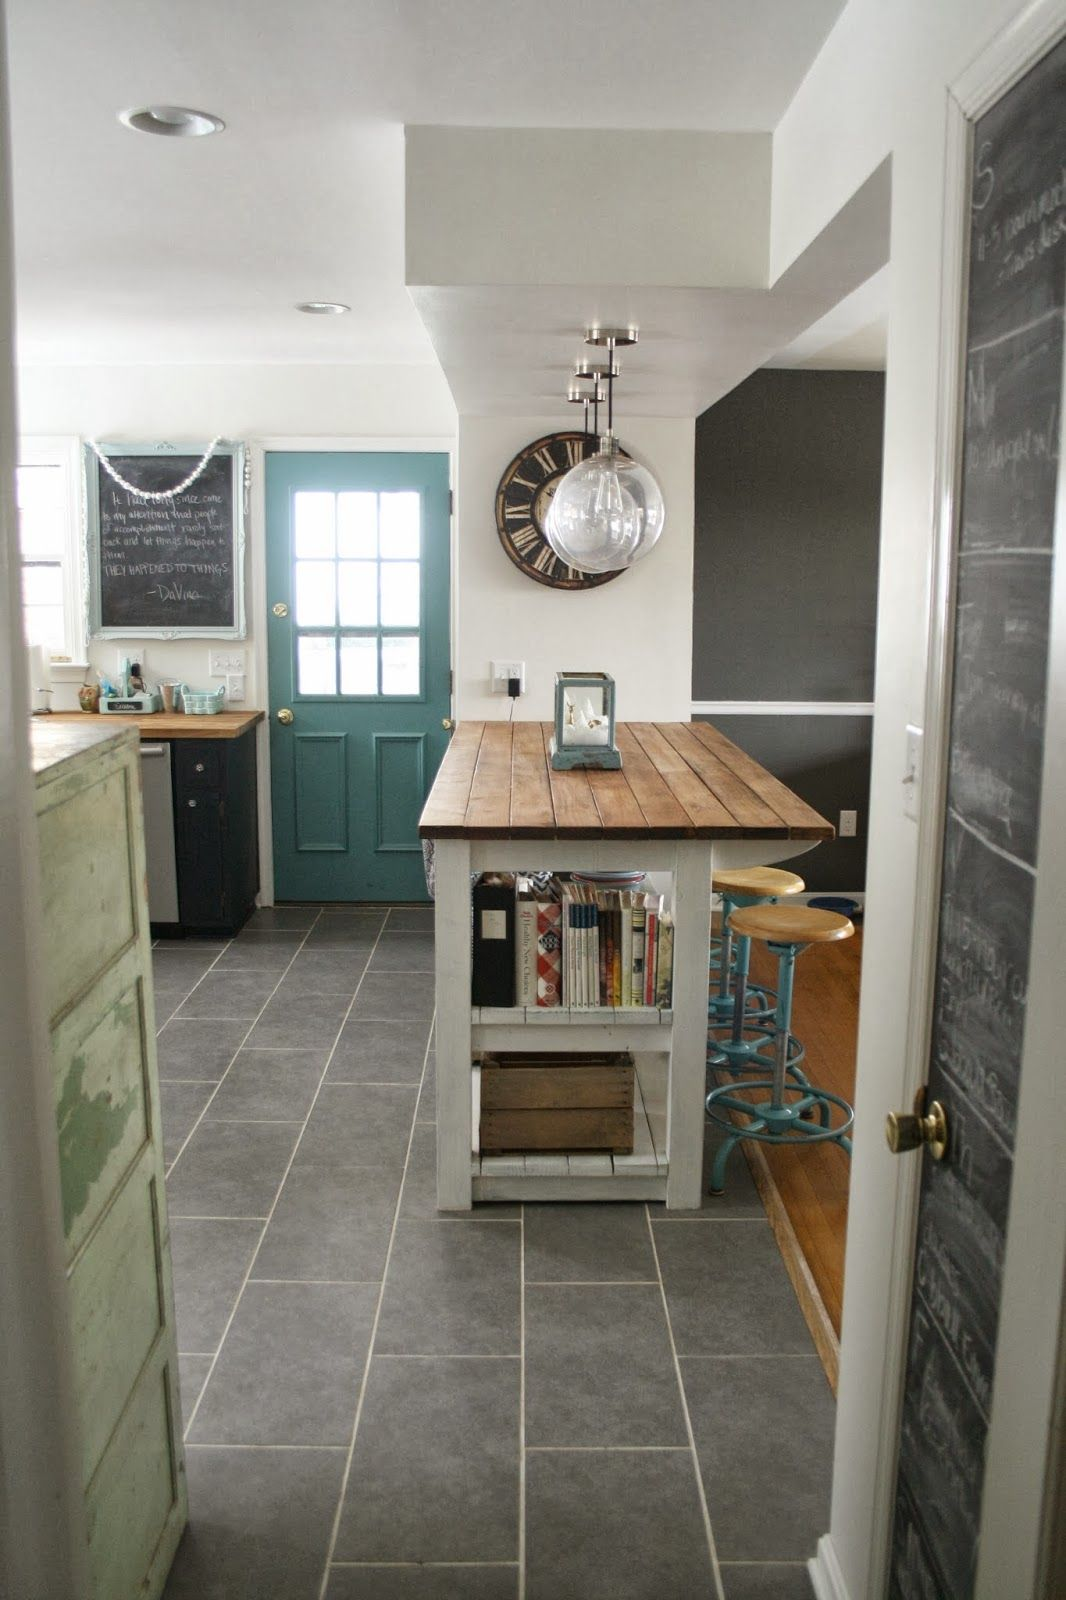 Primitive & Proper: My Industrial Look Kitchen Island (and that time ...